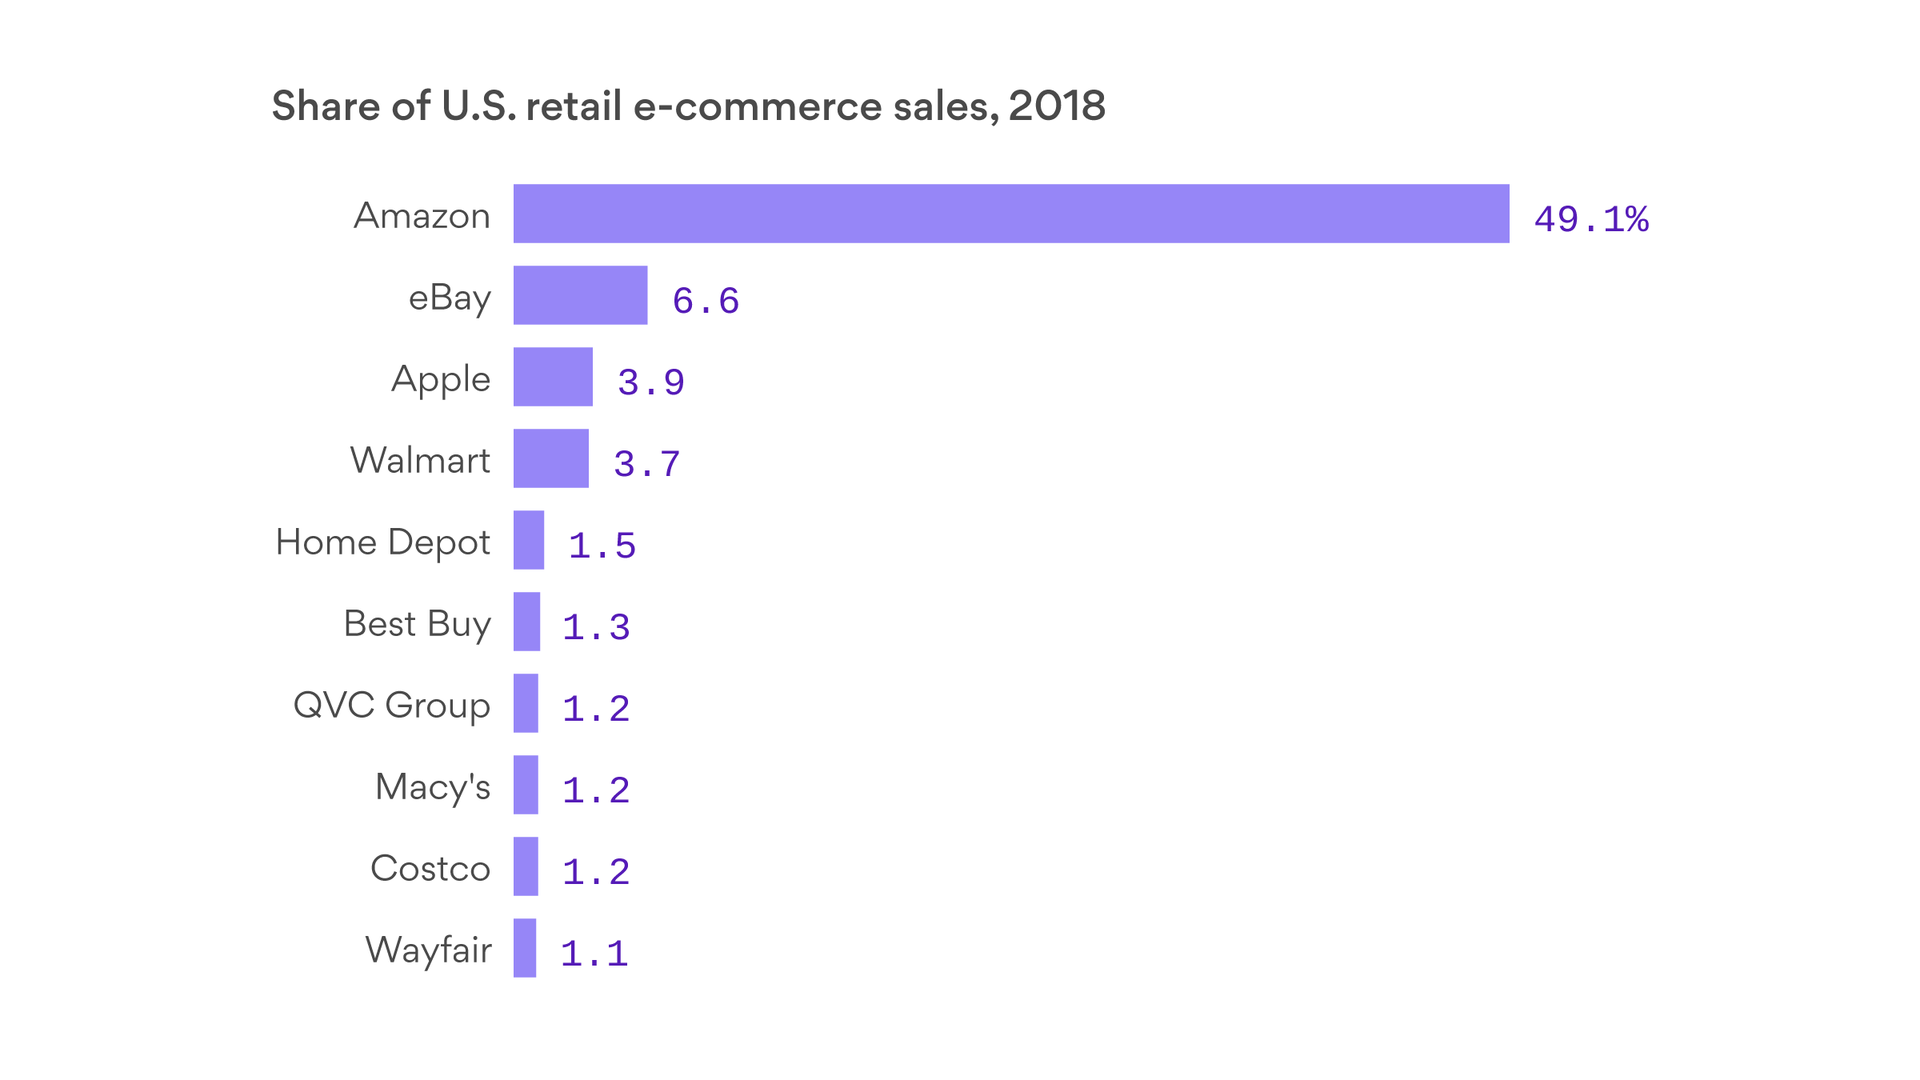 Chart of the top U.S. retailers in e-commerce